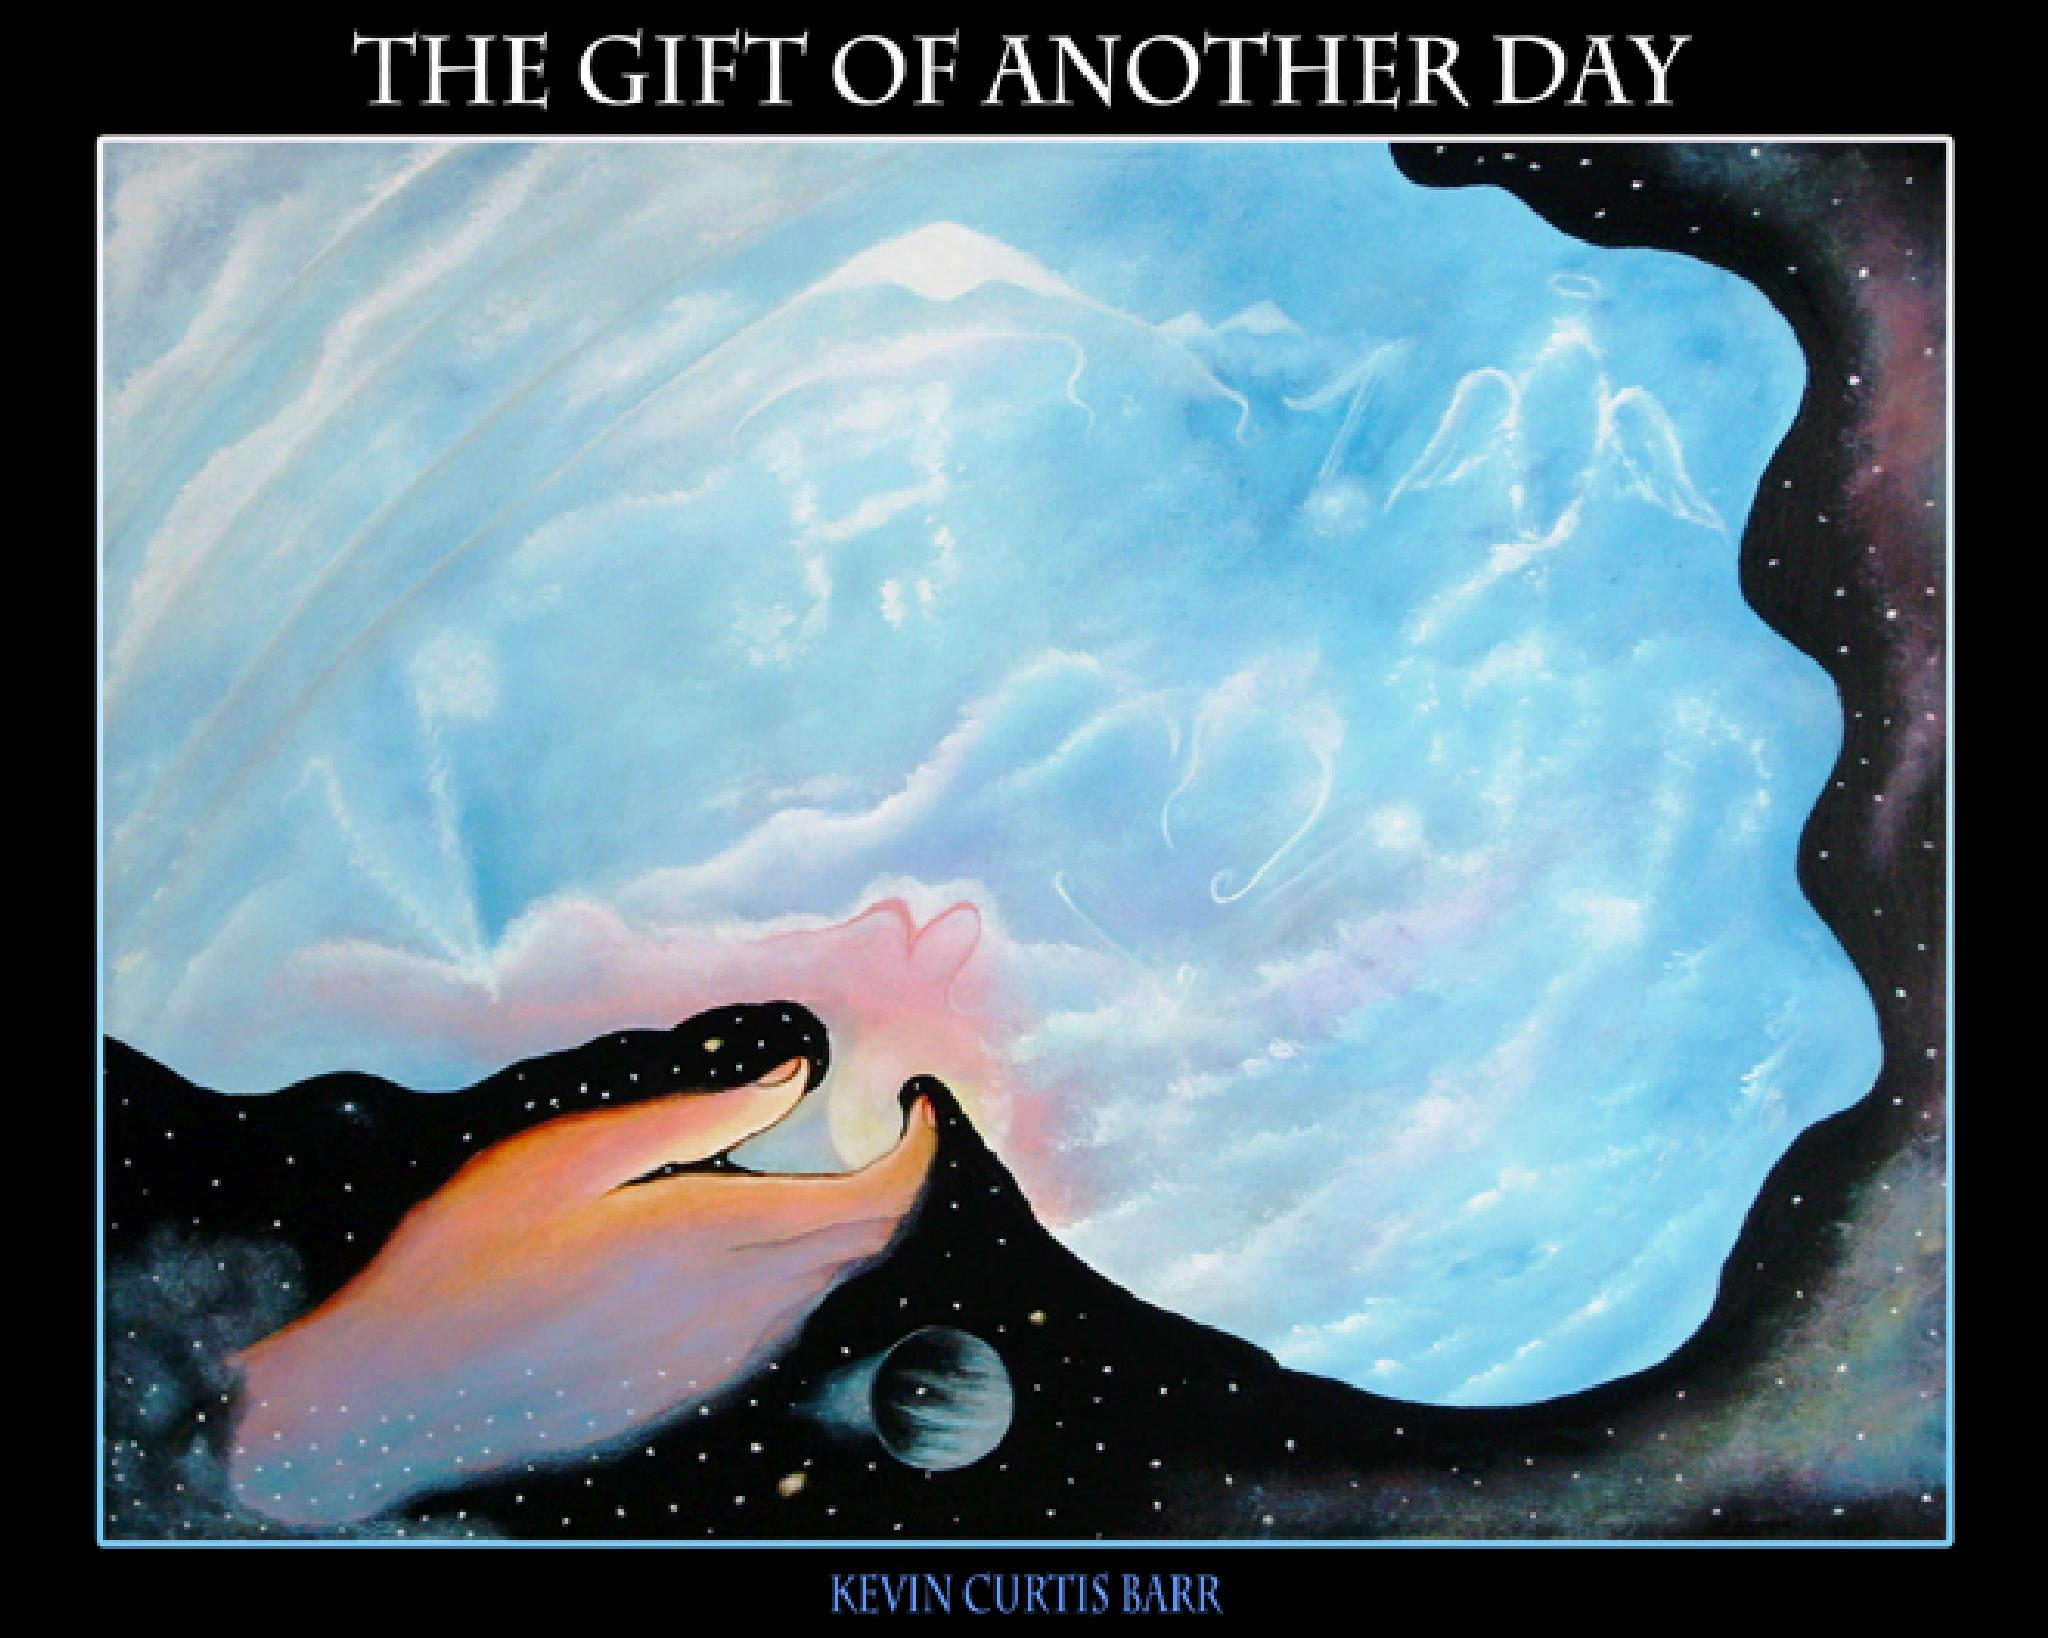 THE GIFT OF ANOTHER DAY by Kevin Curtis Barr